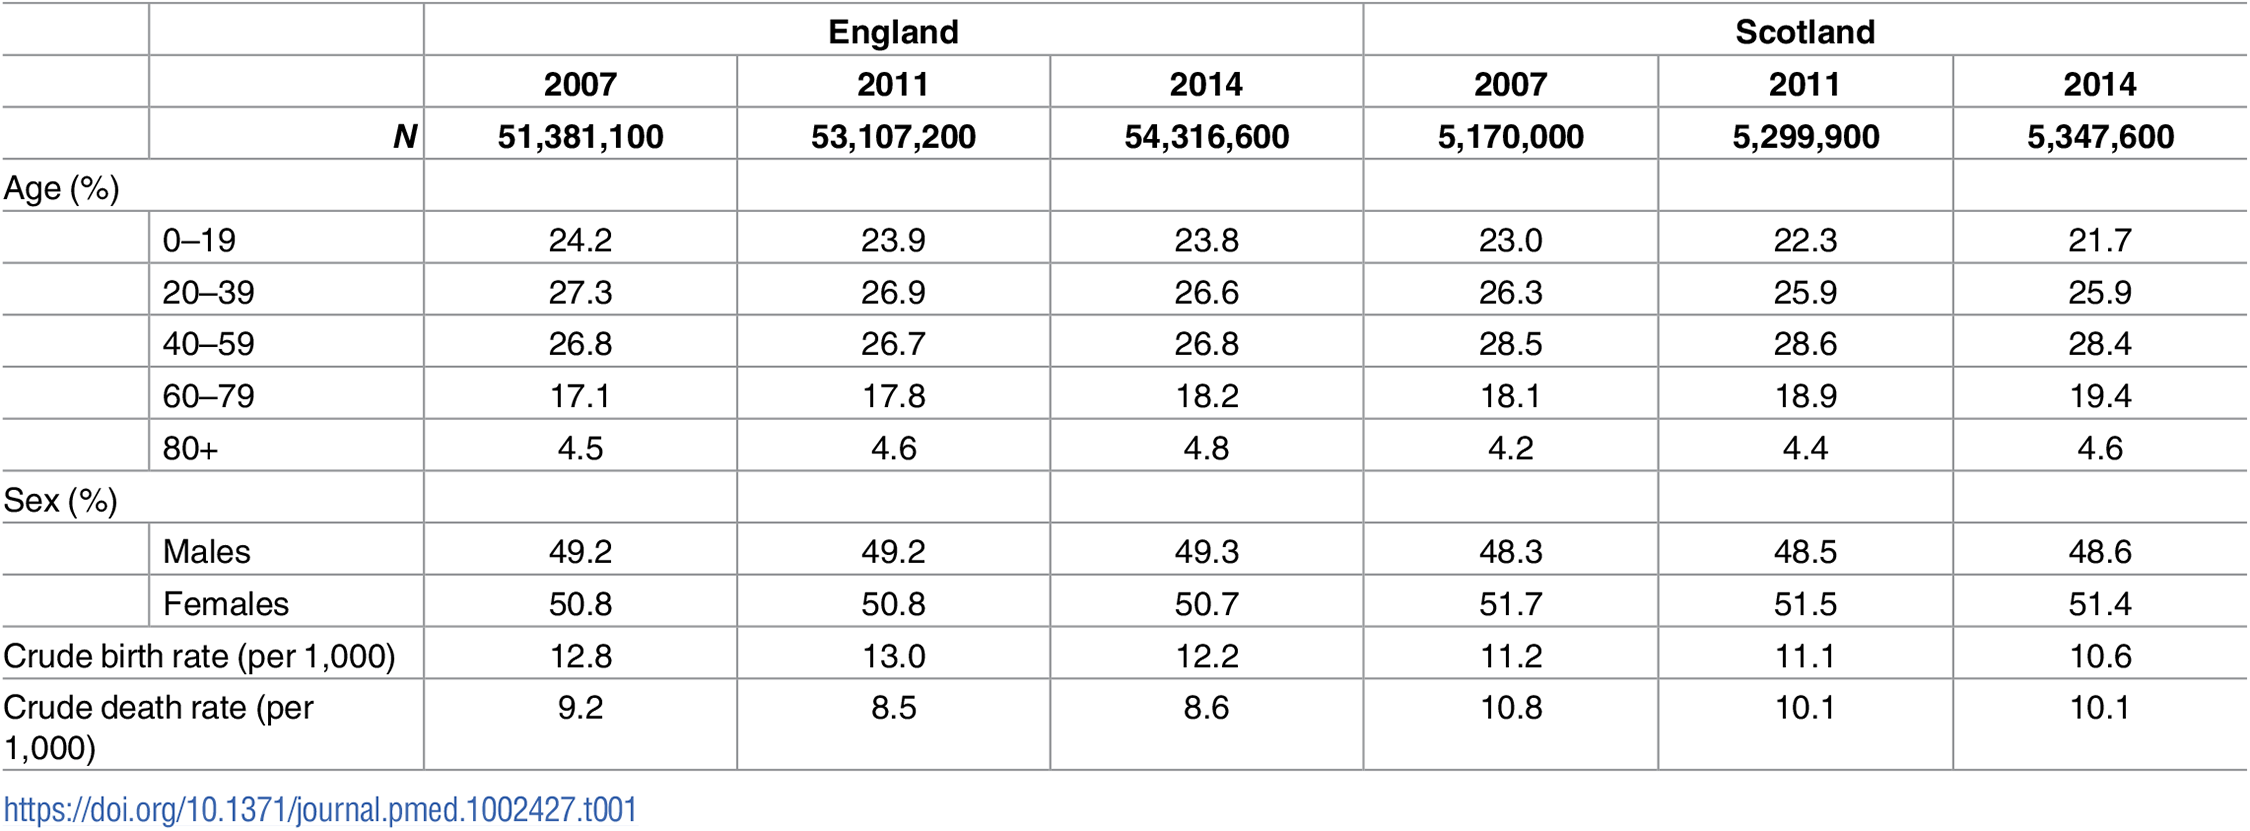 Population characteristics of England and Scotland, 2007–2014.